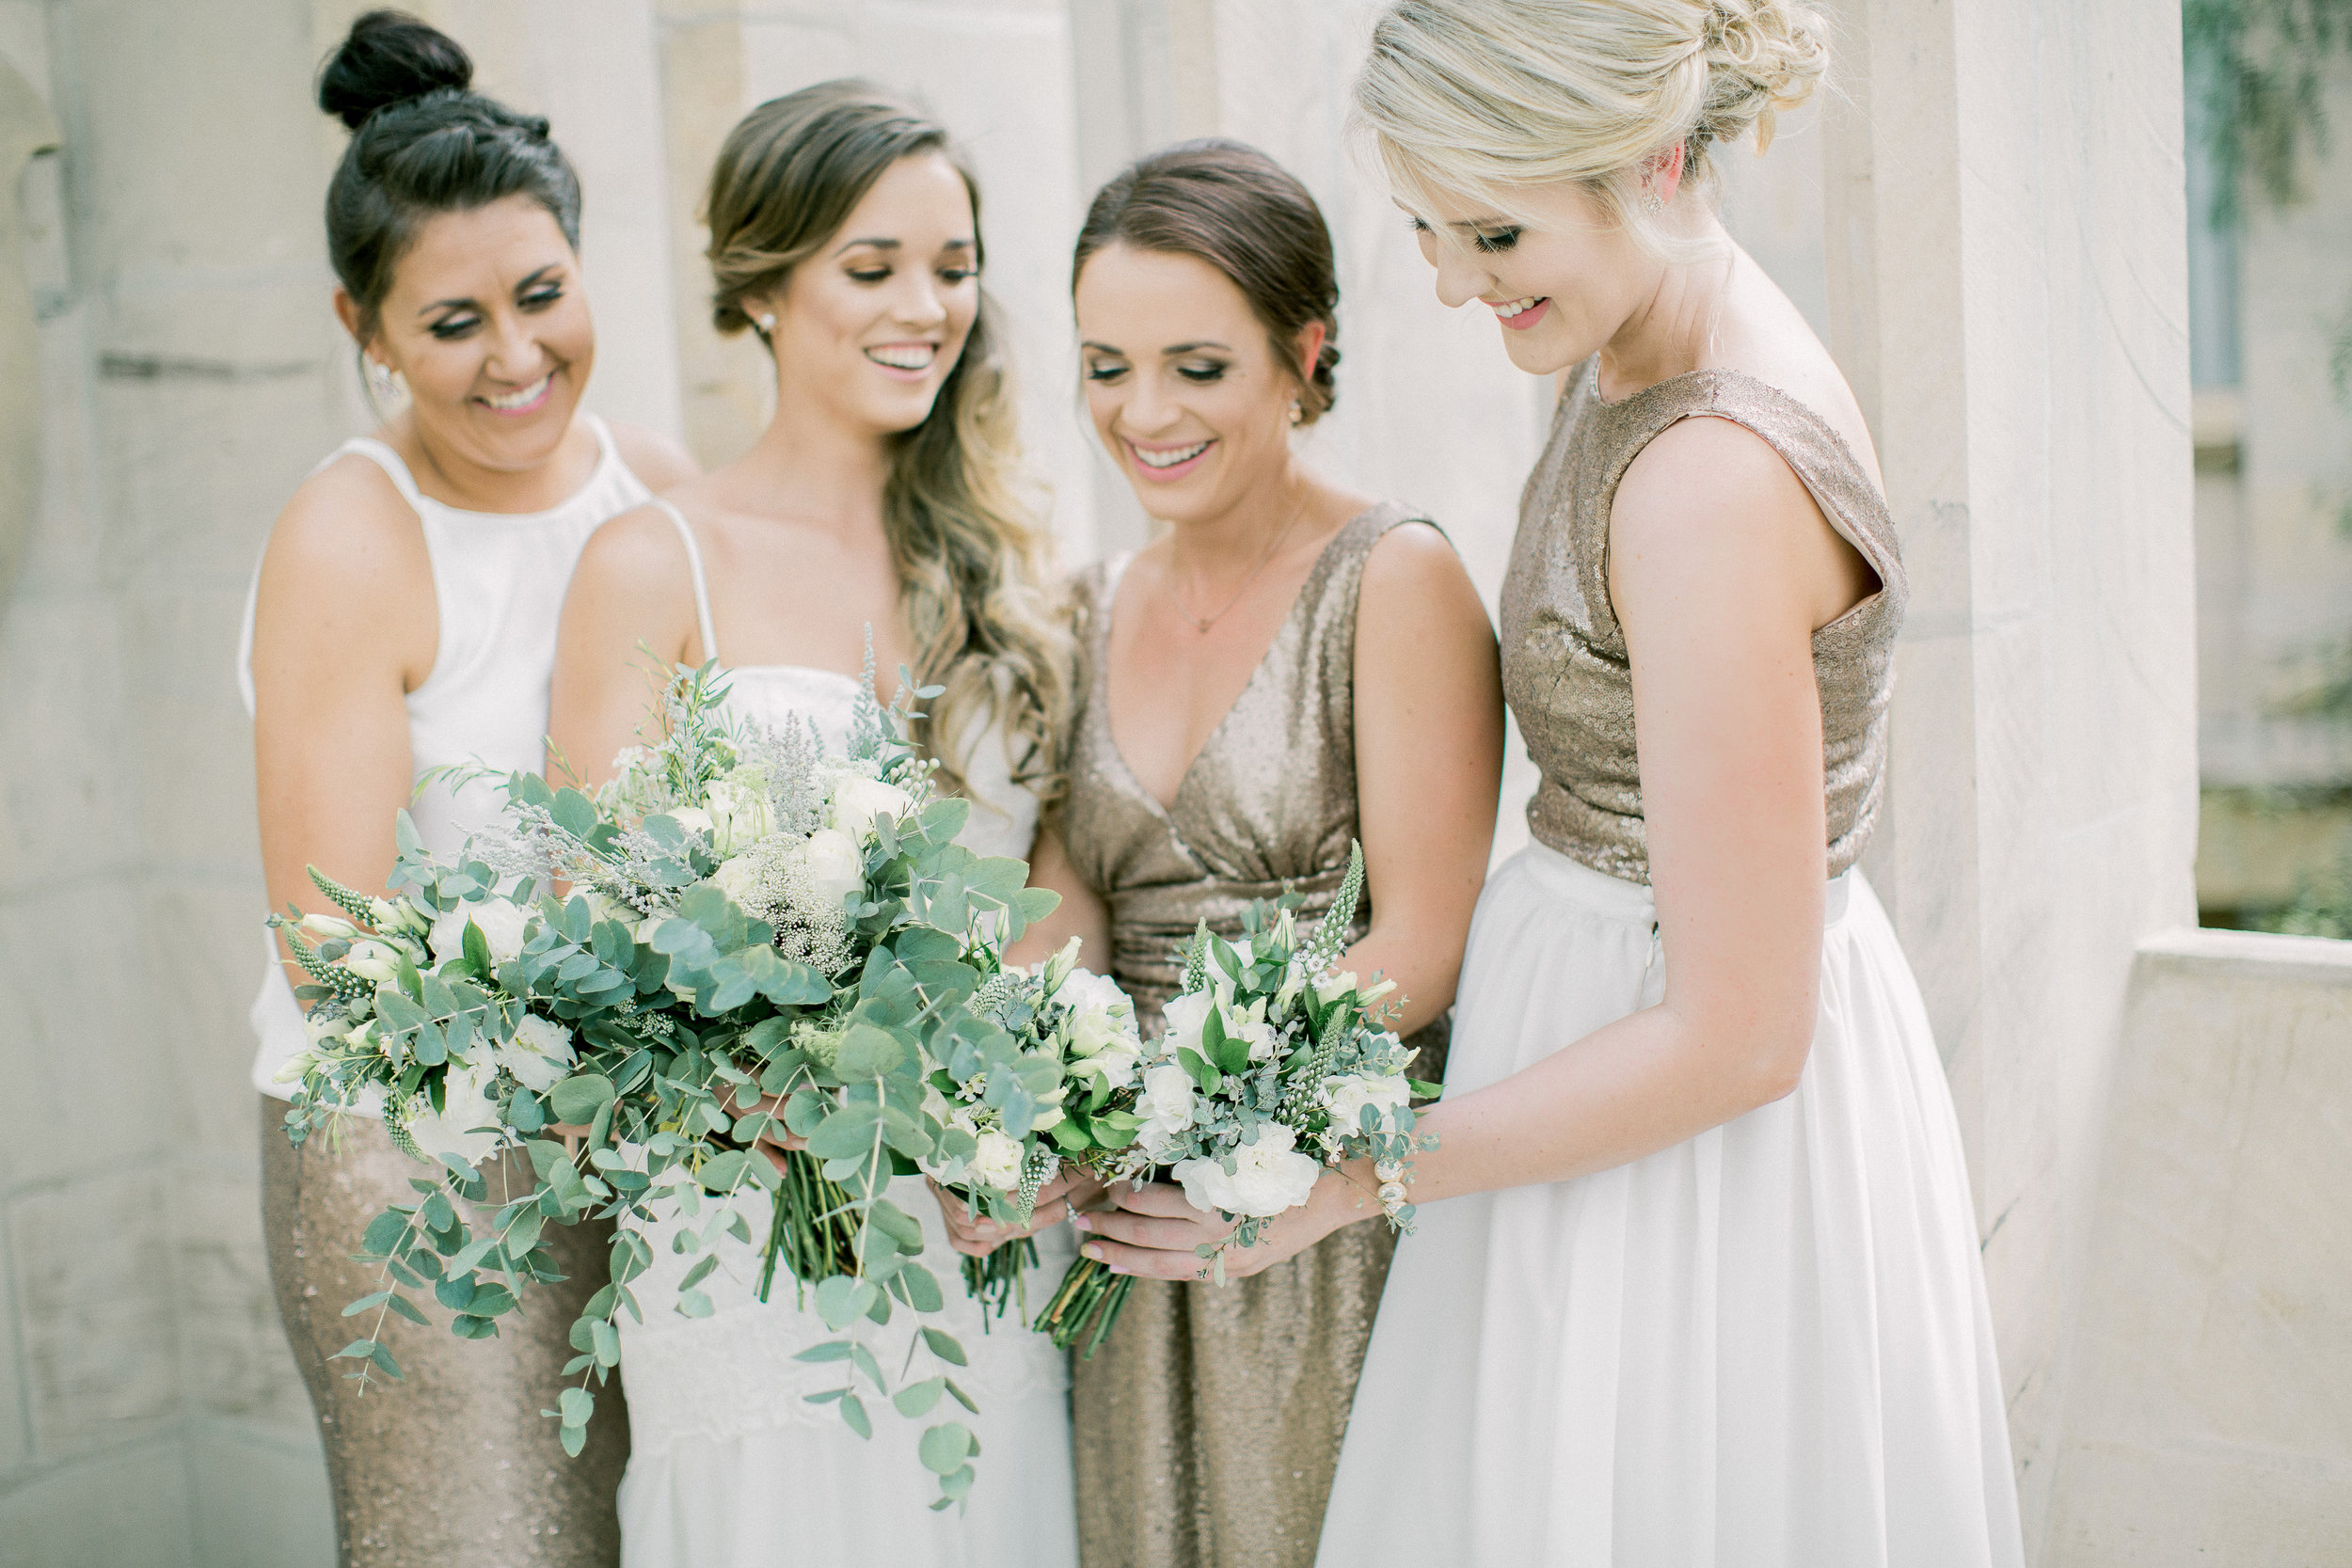 South africa wedding photographer clareece smit photography14.jpg